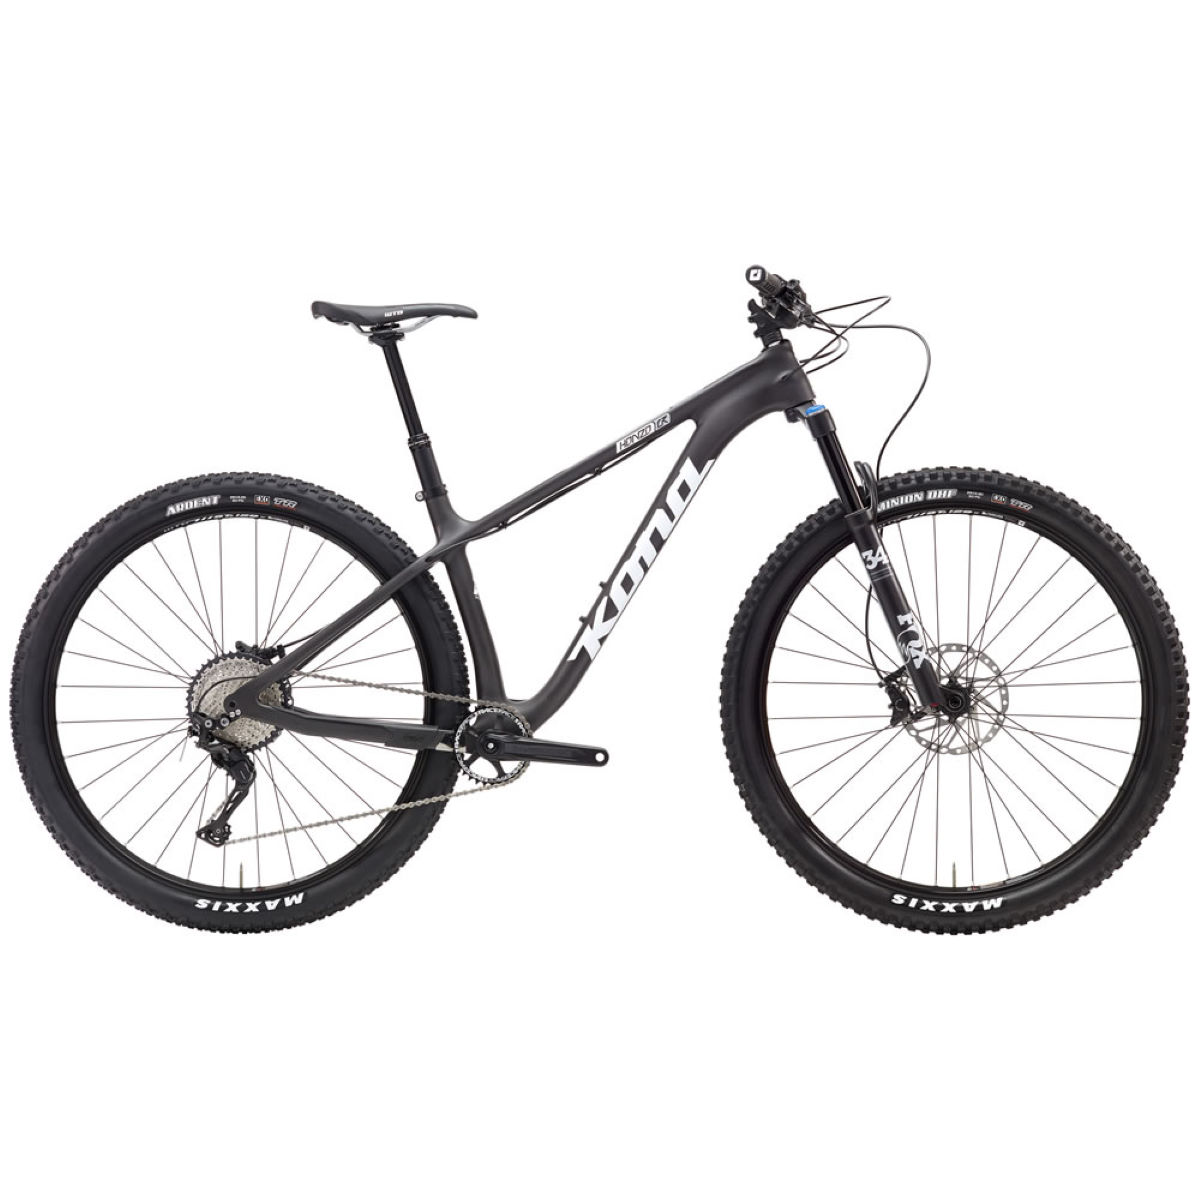 Kona Honzo CR Trail (2017) Mountain Bike   Hard Tail Mountain Bikes